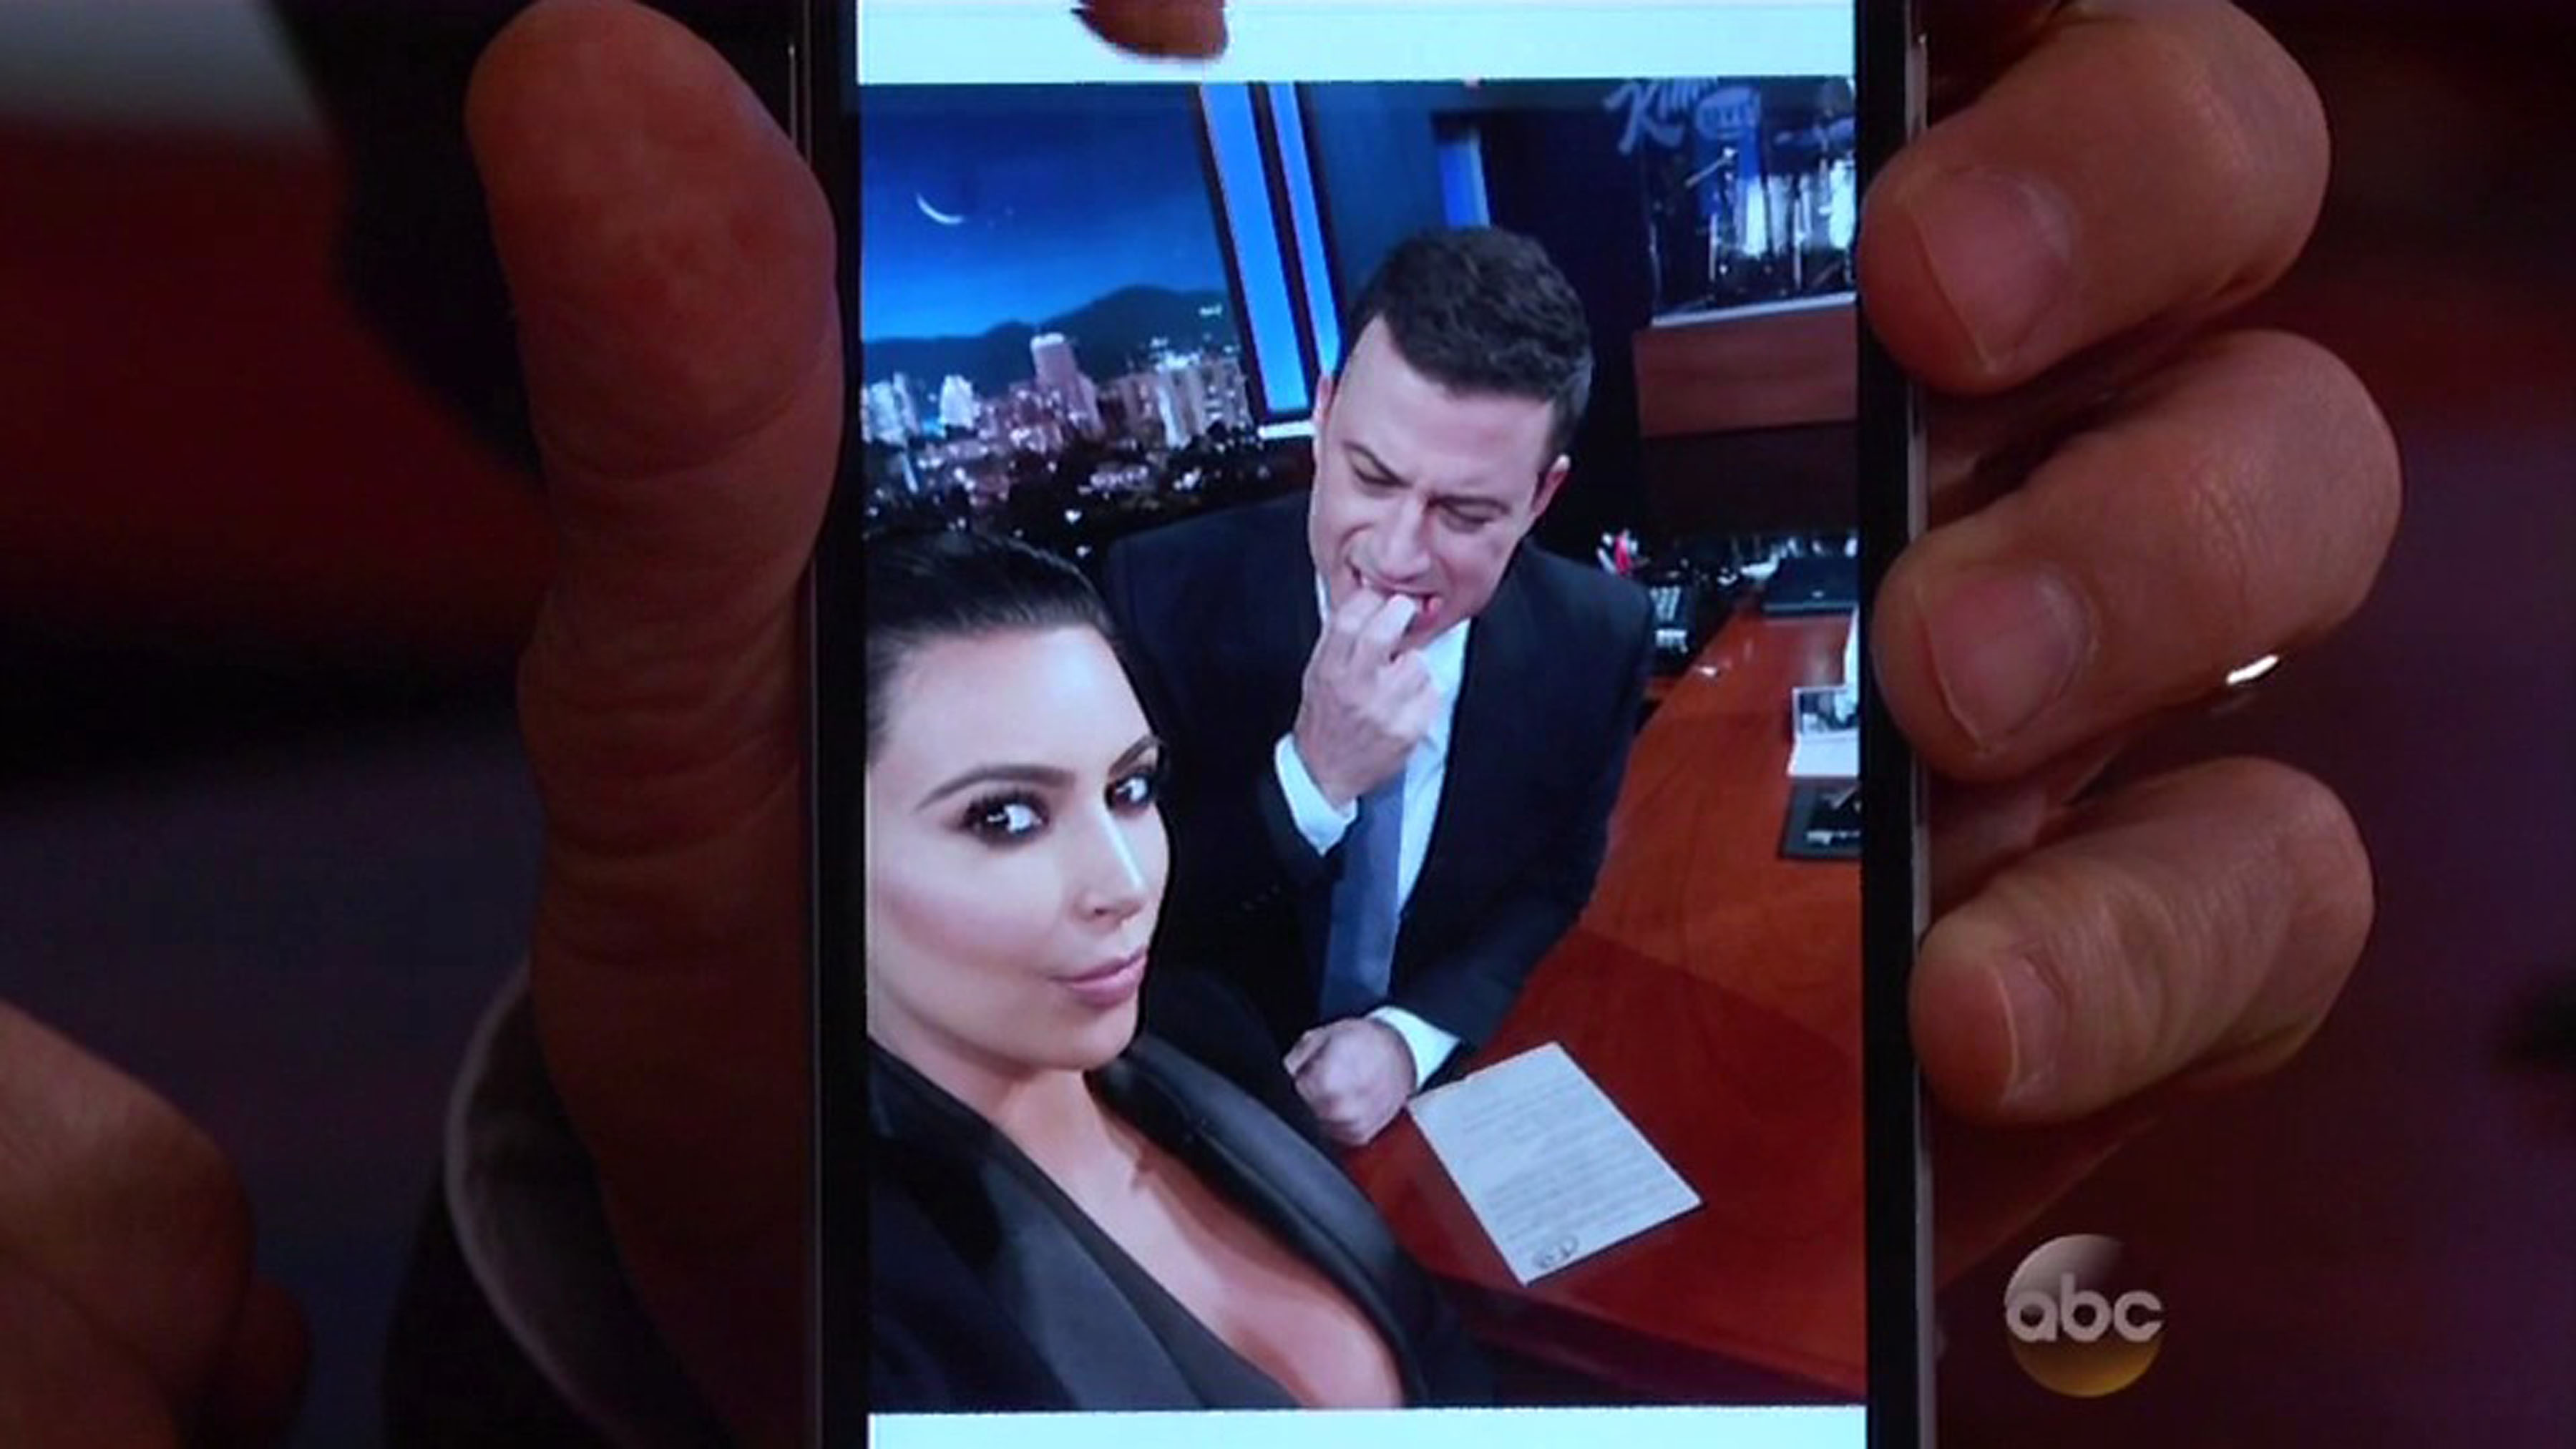 'I am going to try to not look at your breasts': Jimmy Kimmel is caught checking out Kim Kardashian